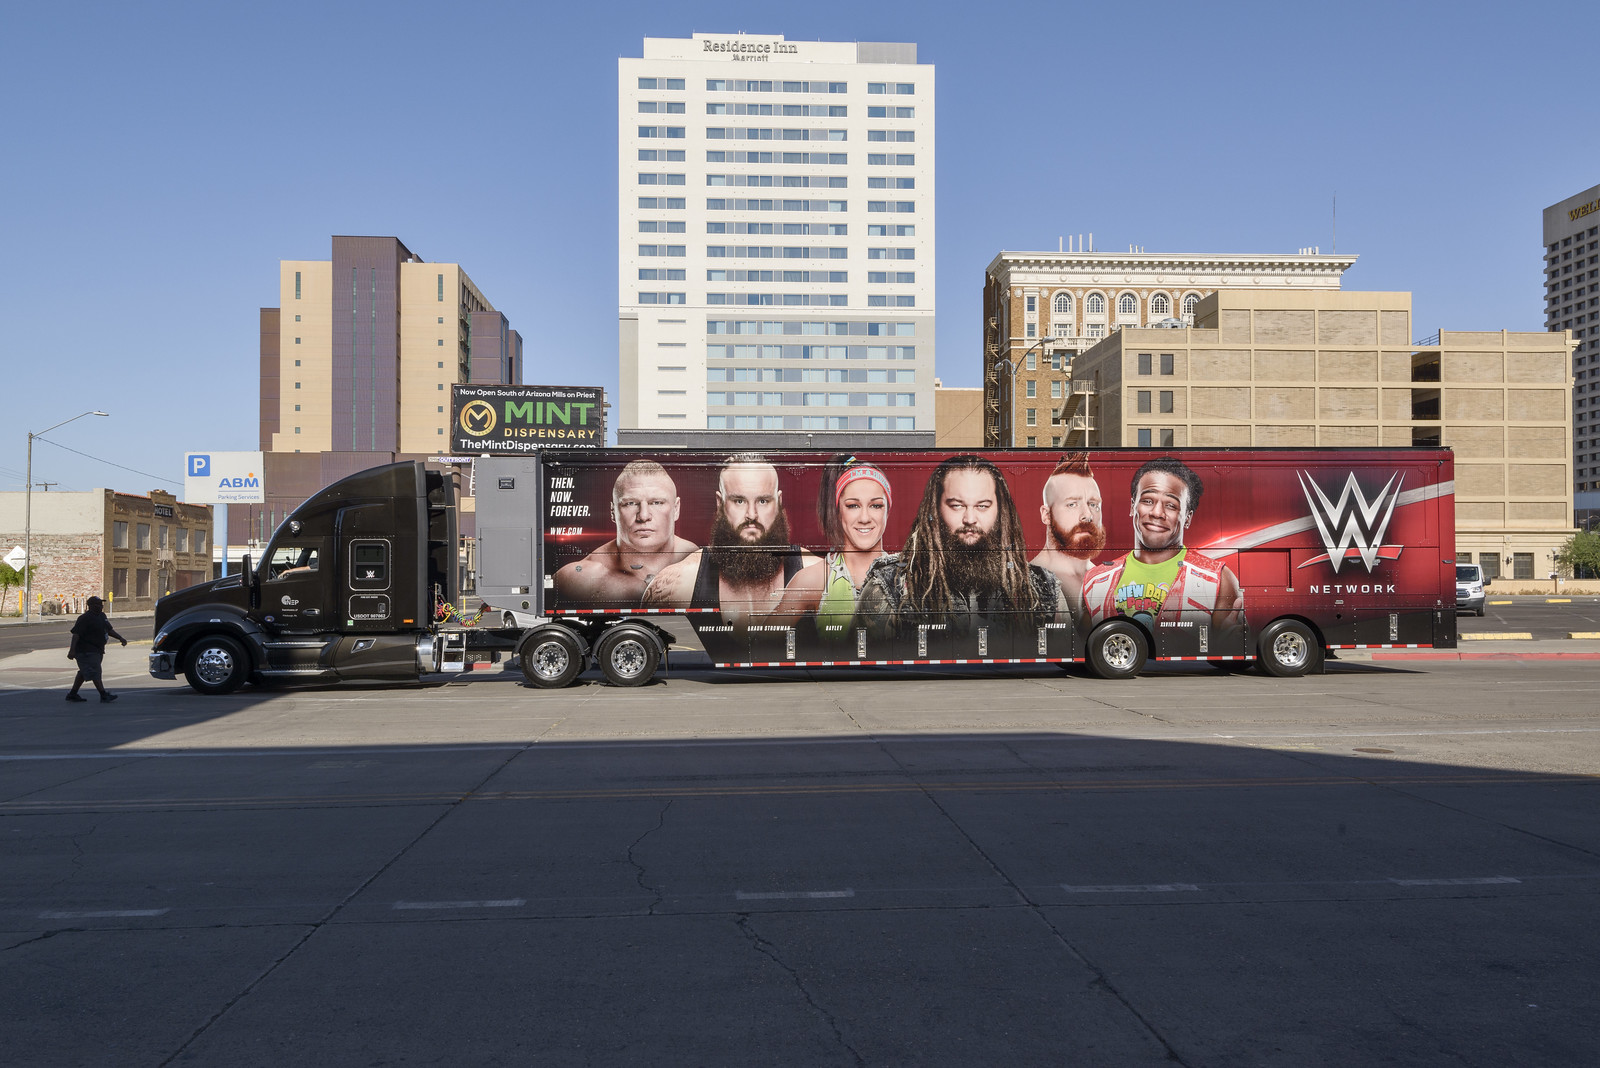 World Wrestling Entertainment Truck | by GC_Dean